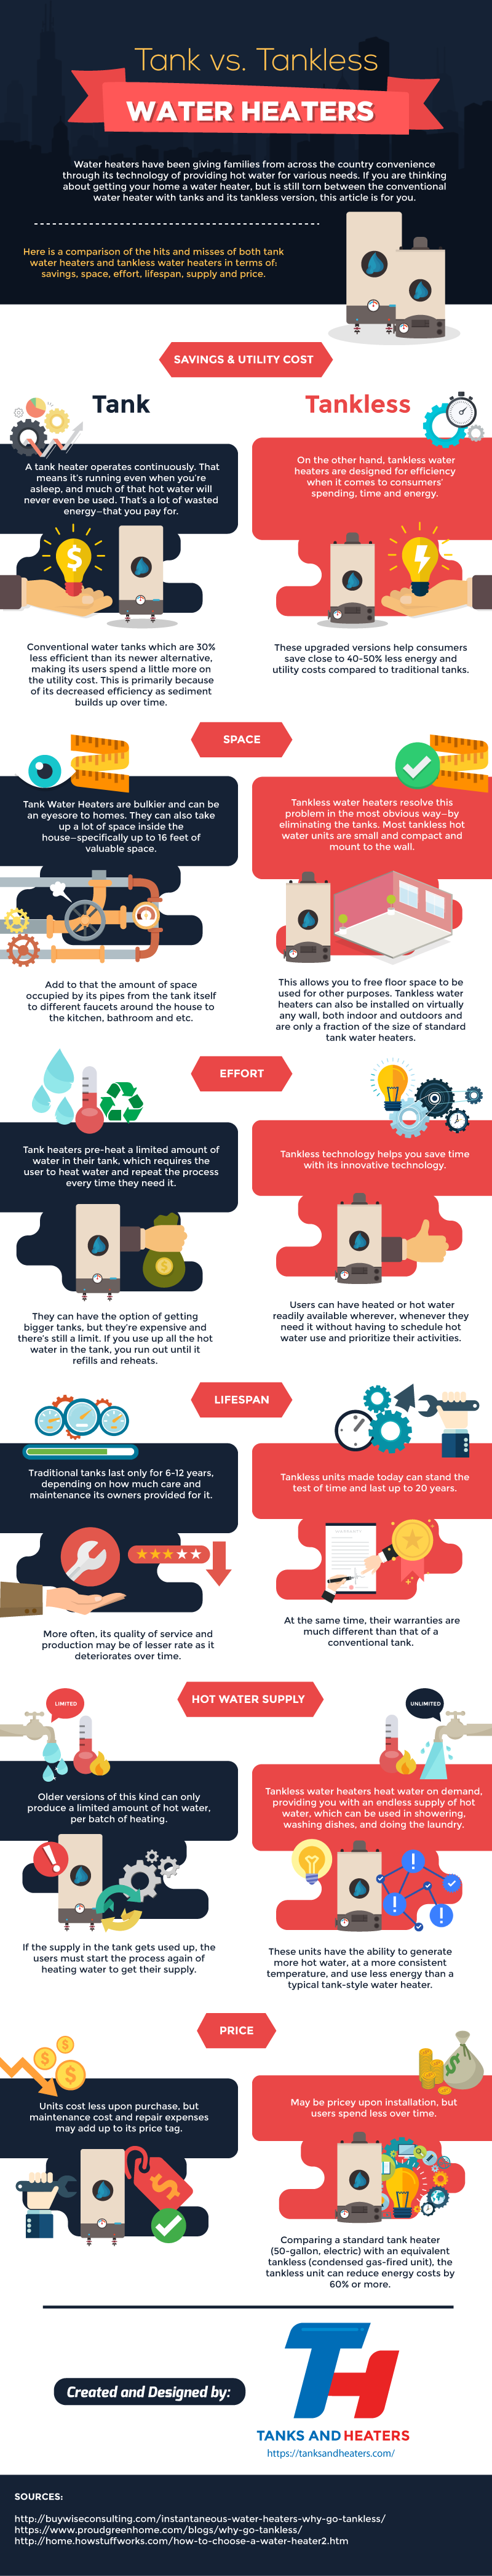 Should Your Water Heater Be Tank-Less - Infographic